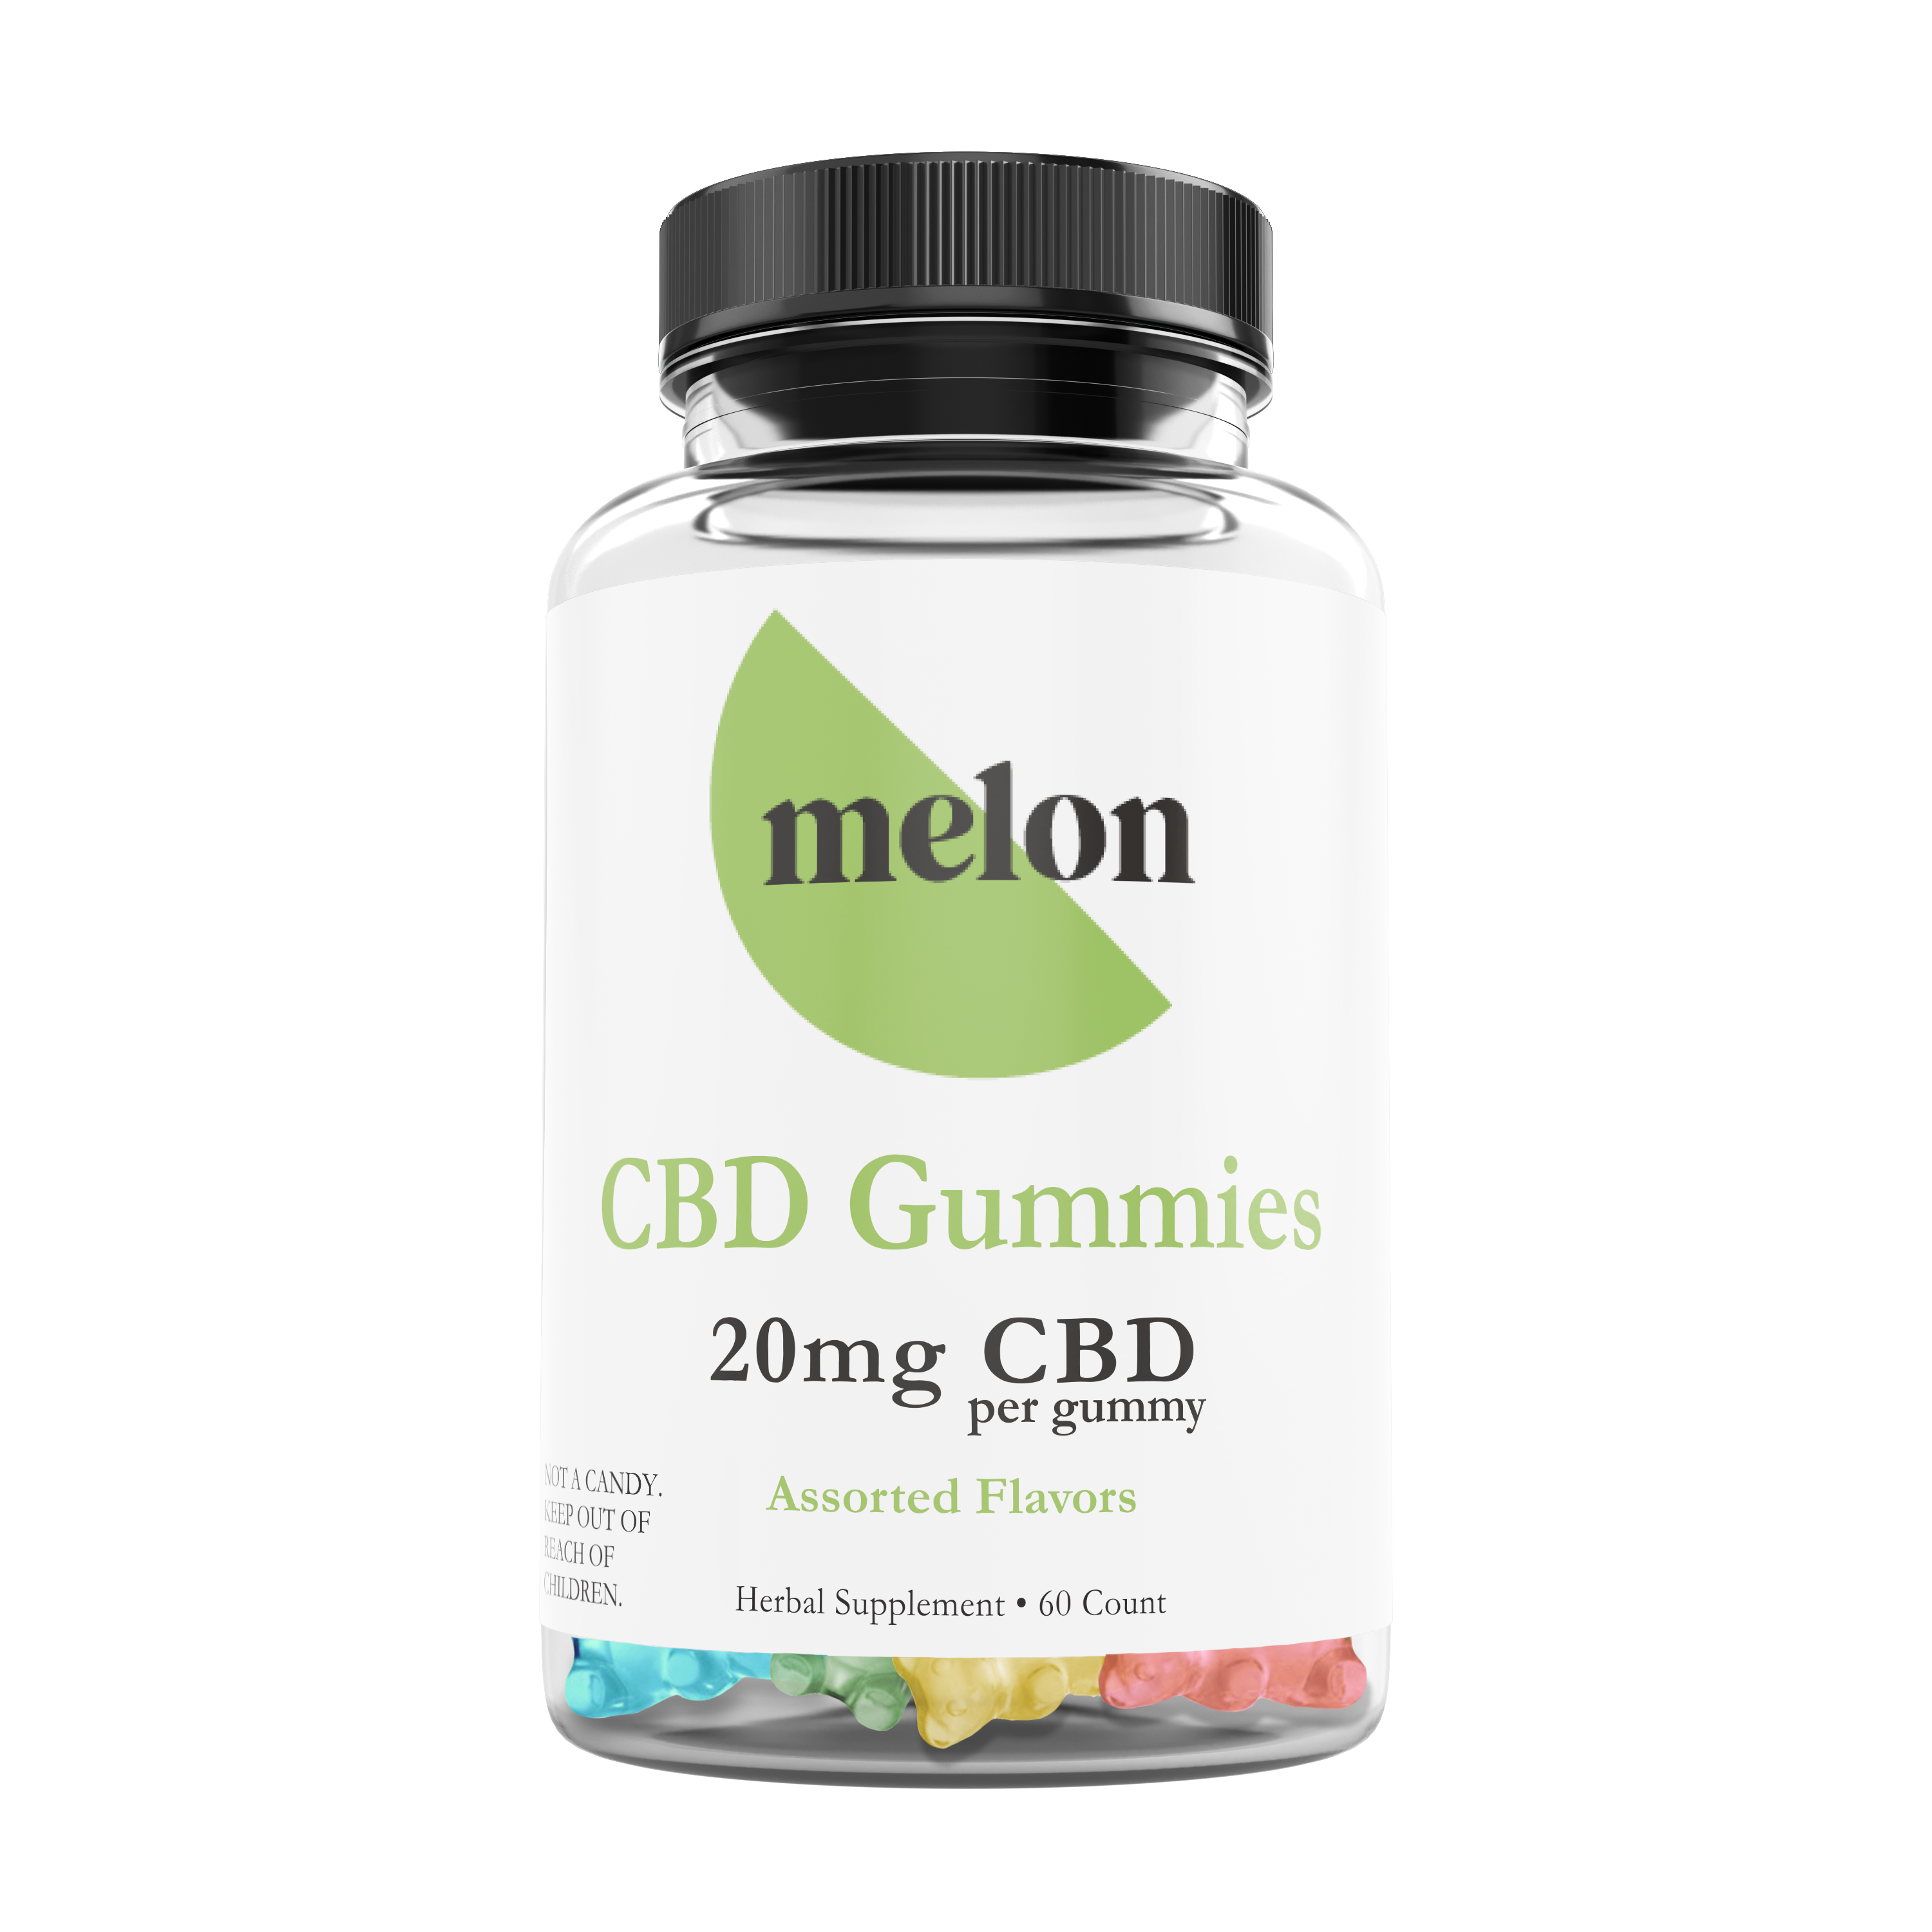 Melon CBD, CBD Gummies